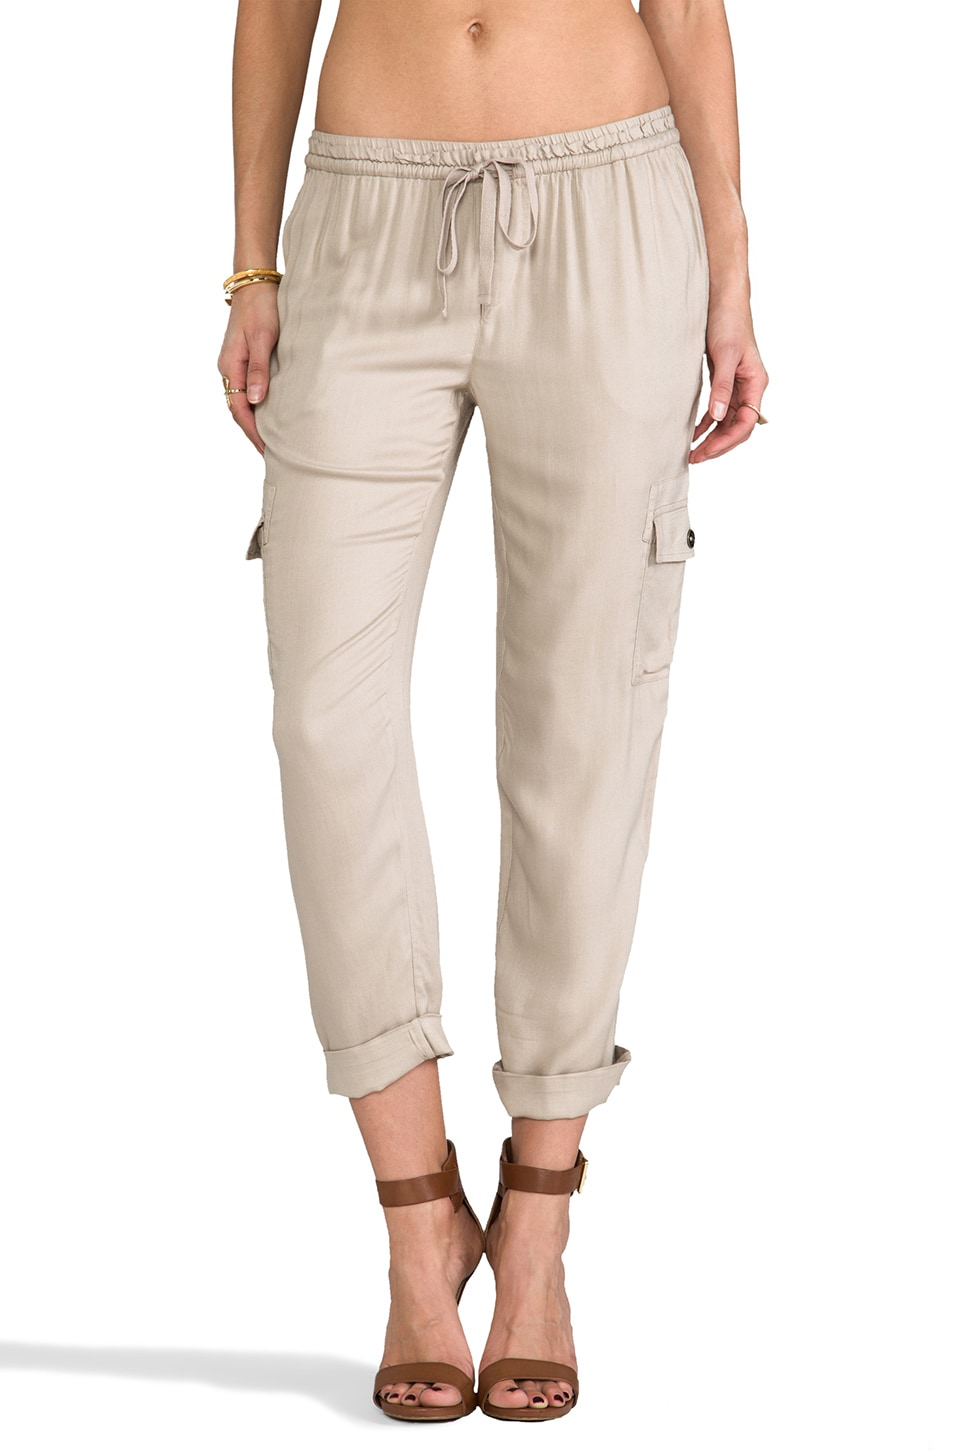 Soft Joie Laila Pants in Sandstorn